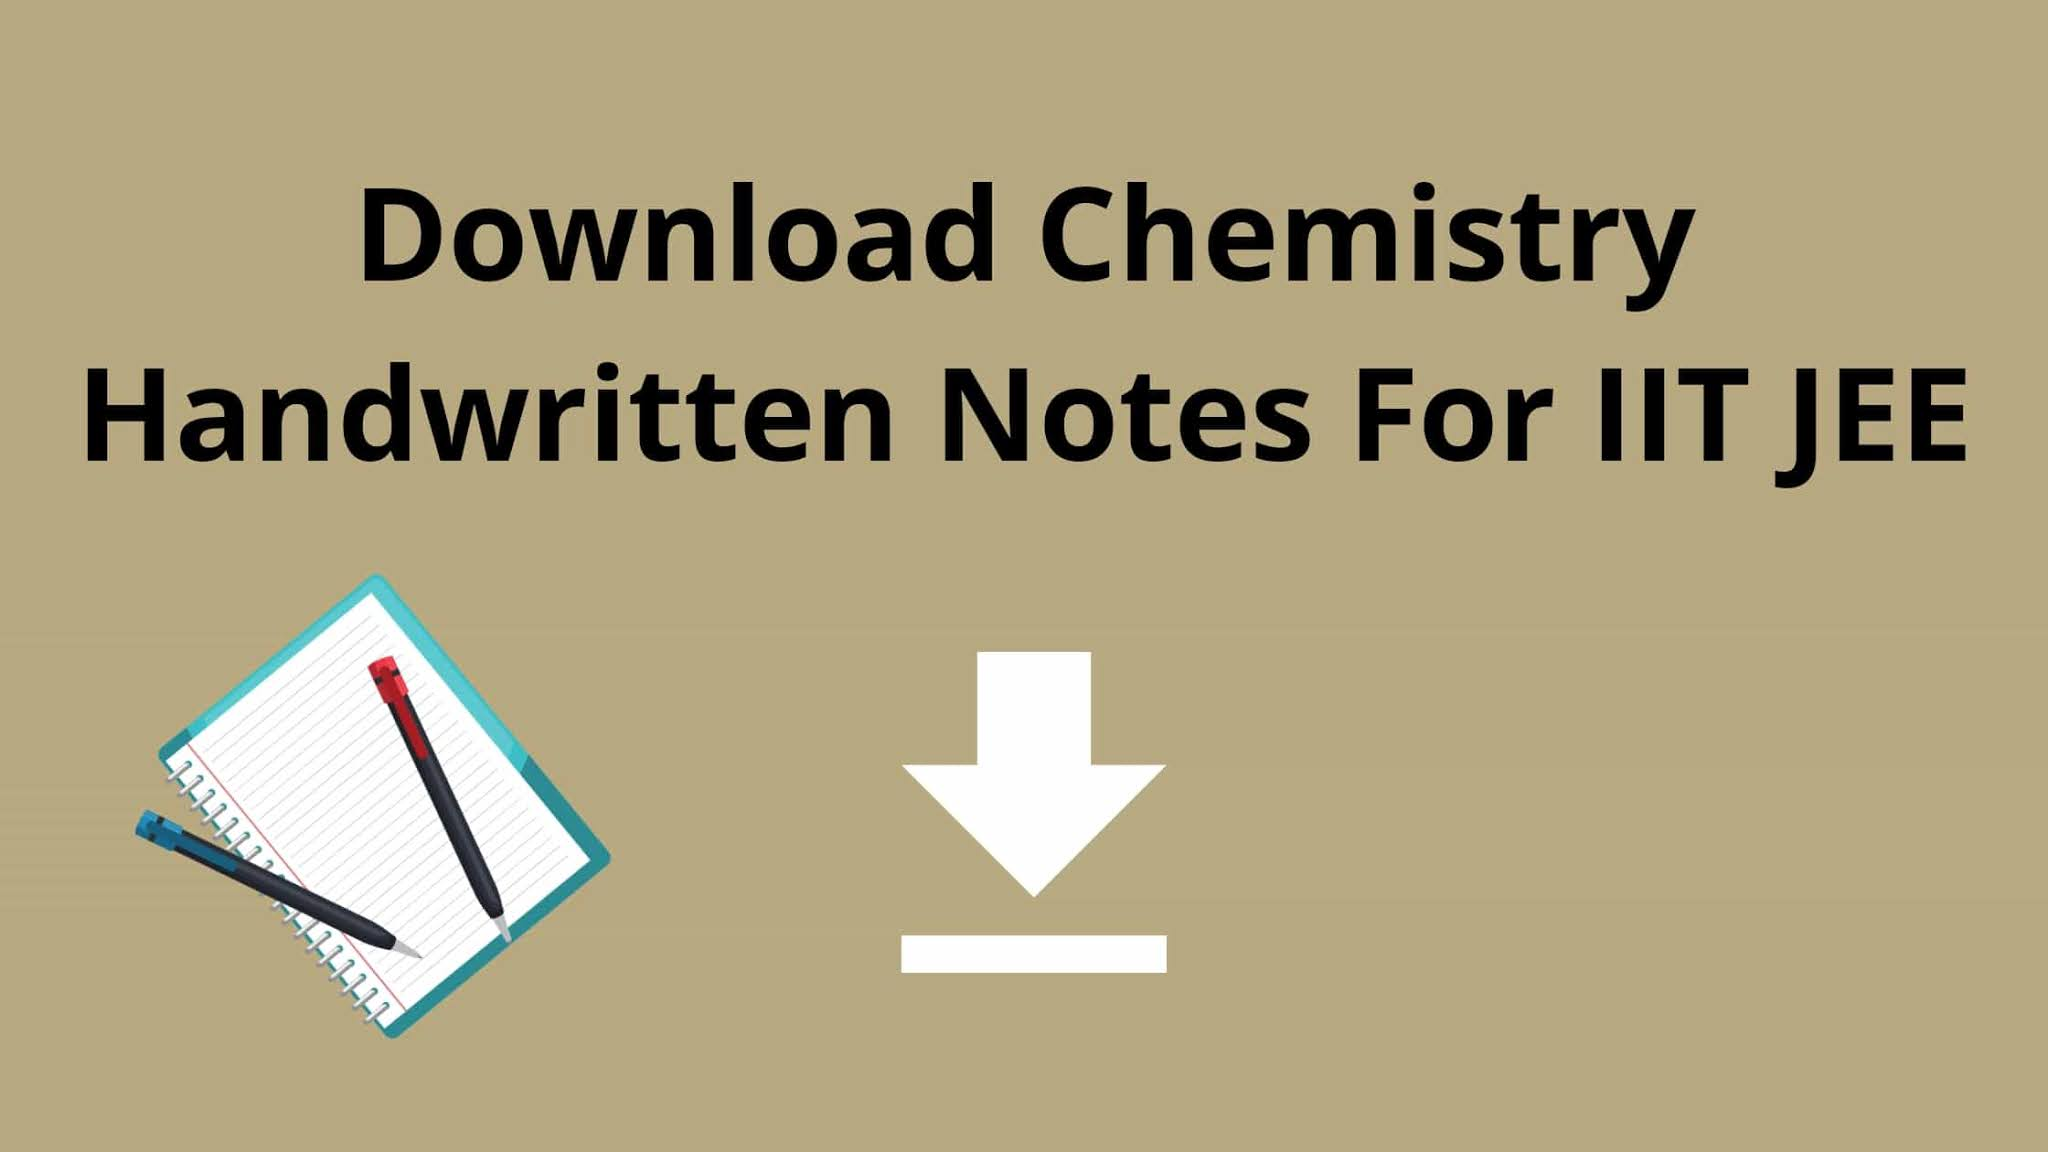 [PDF] Download Chemistry Handwritten Notes For IIT JEE